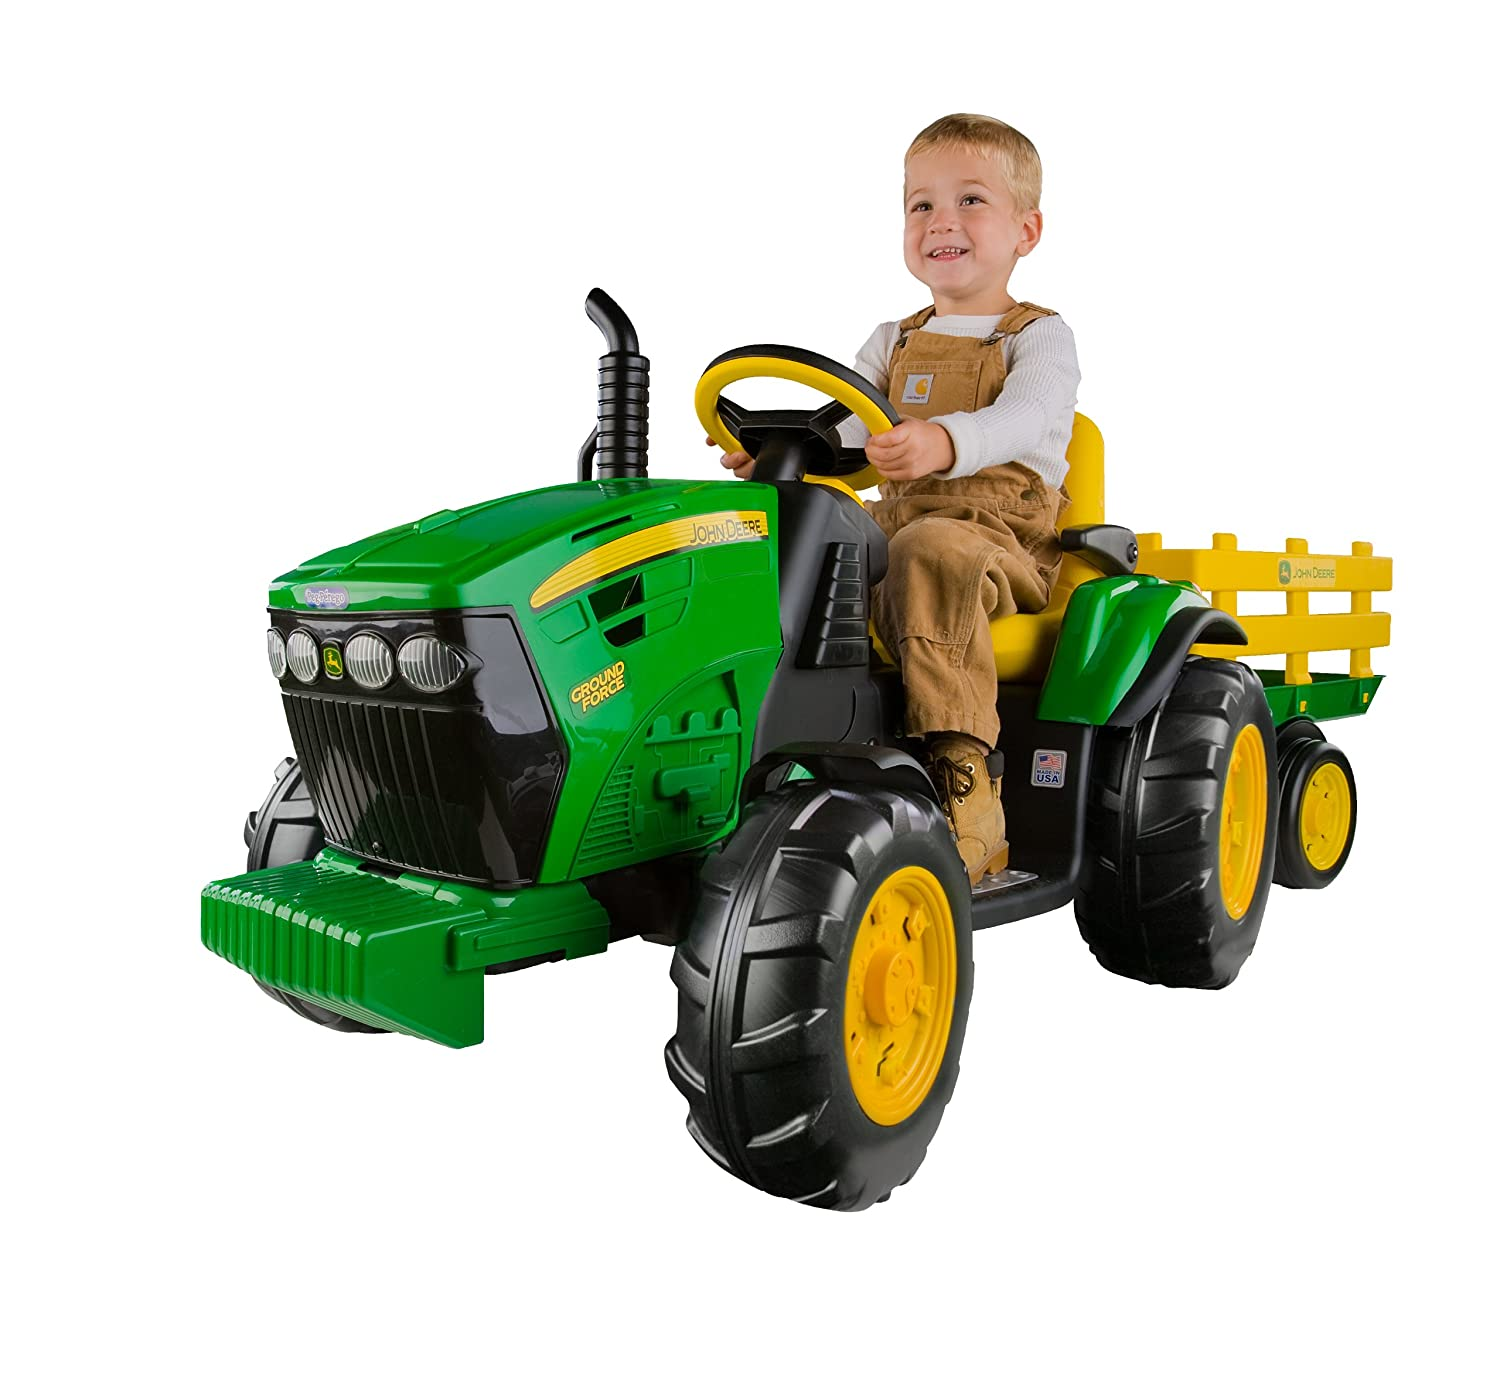 Peg Perego John Deere Ground Force Tractor with Trailer - Power wheels John Deere